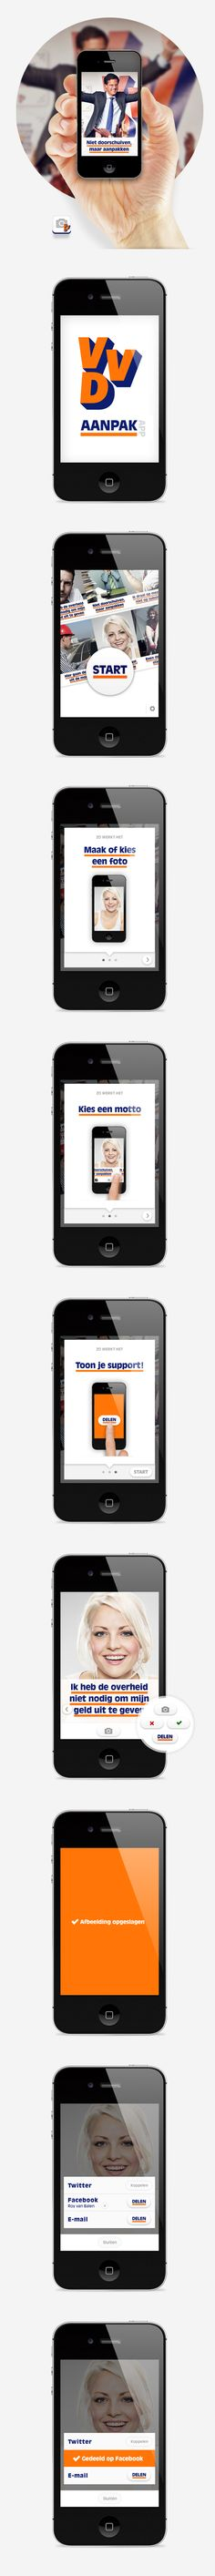 In September 2012 there were elections for a new government in the Netherlands. This app for the VVD party (won the elections, now the biggest party) supported its country wide on- and offline strategy. The app lets people add the banners of the offline campaign to their own pictures helping them to spread the VVD spirit/values across social media on a unique way. #ux #uxd #appdesign #app #elections #netherlands #rutte #vvd #aanpakken